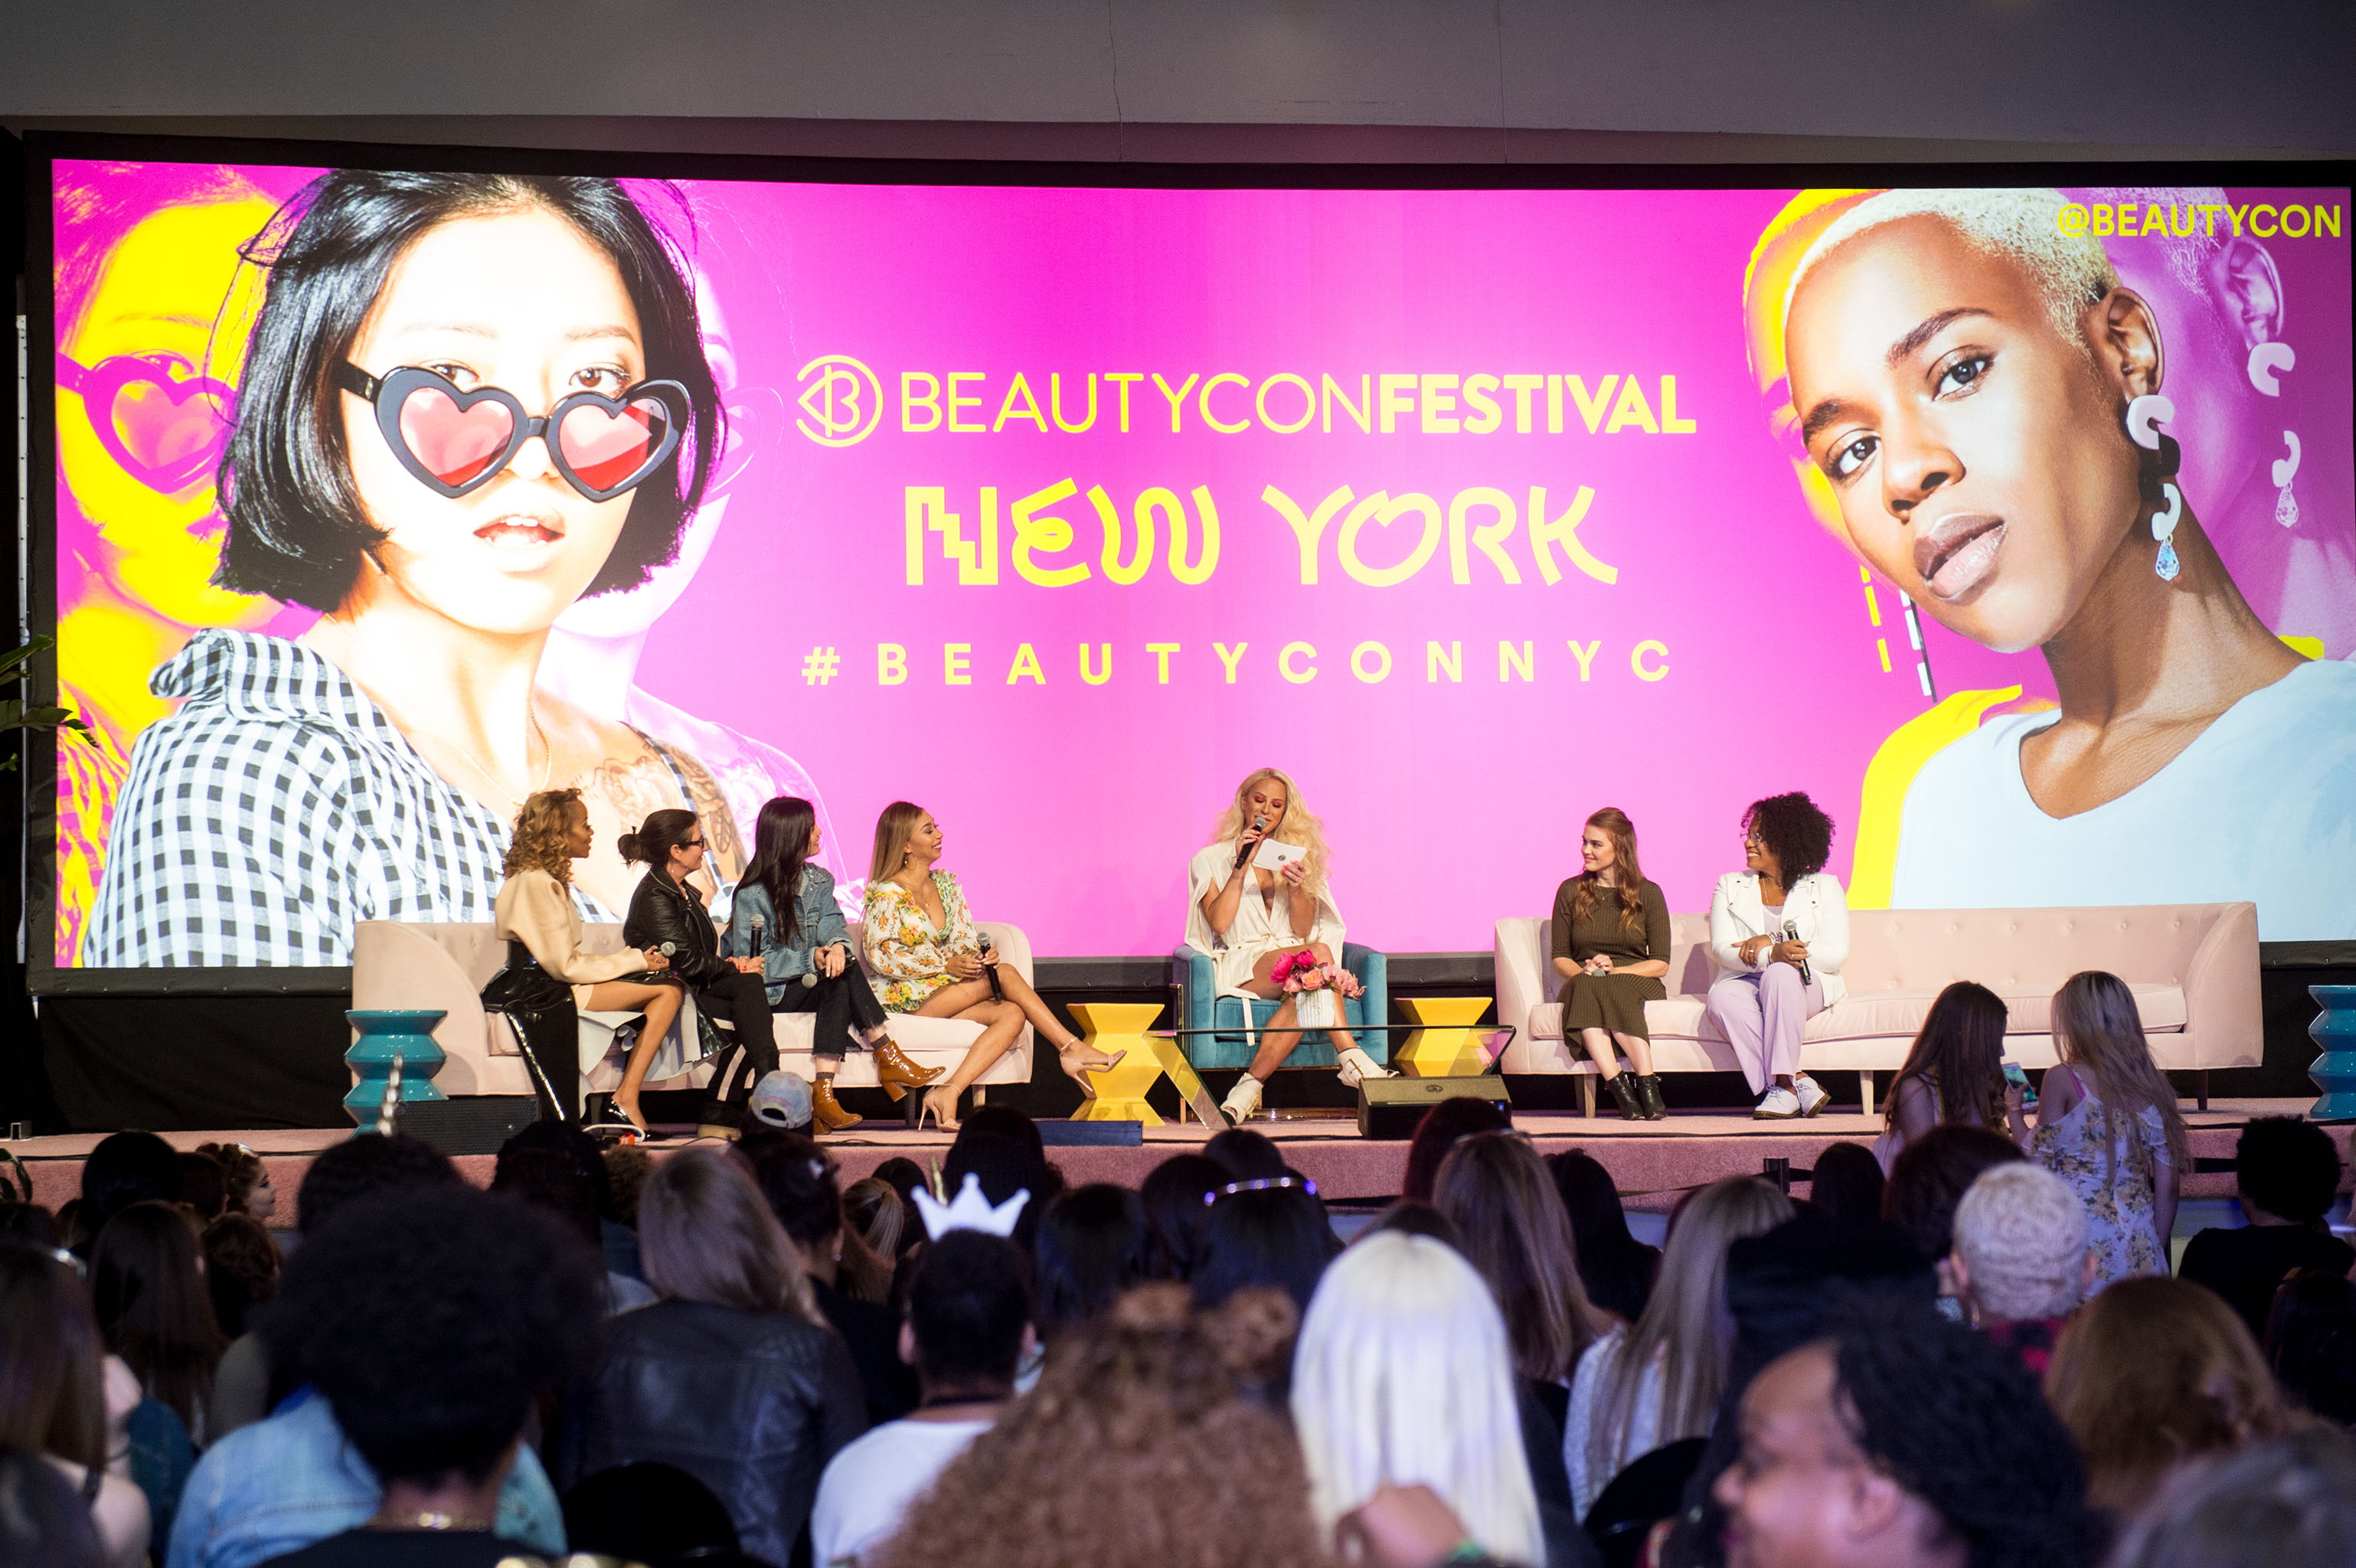 The scene at Beautycon.